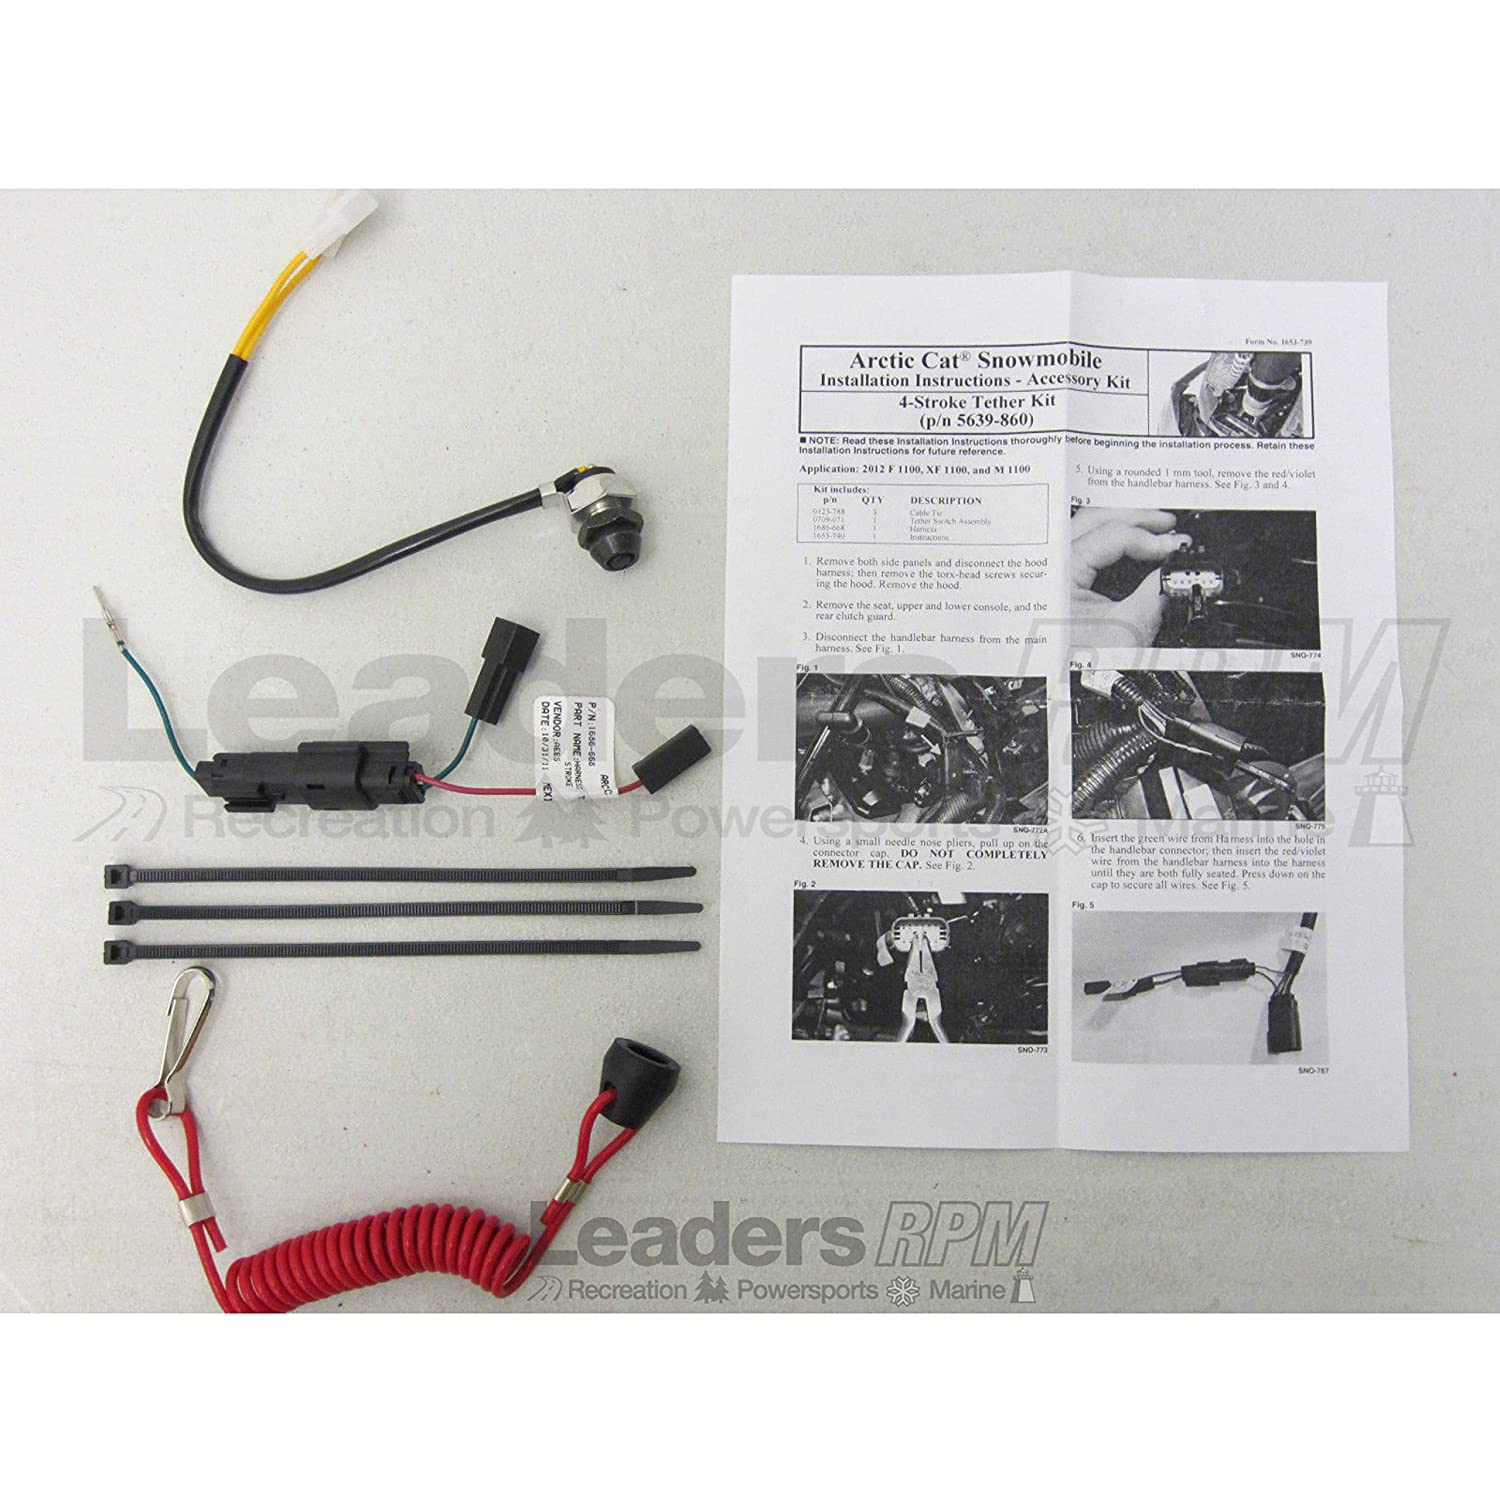 Arctic Cat New Oem Emergency Safety Engine Kill Stop Snowmobile 4 Stroke Wiring Diagrams Tether Switch Lanyard Kit Automotive